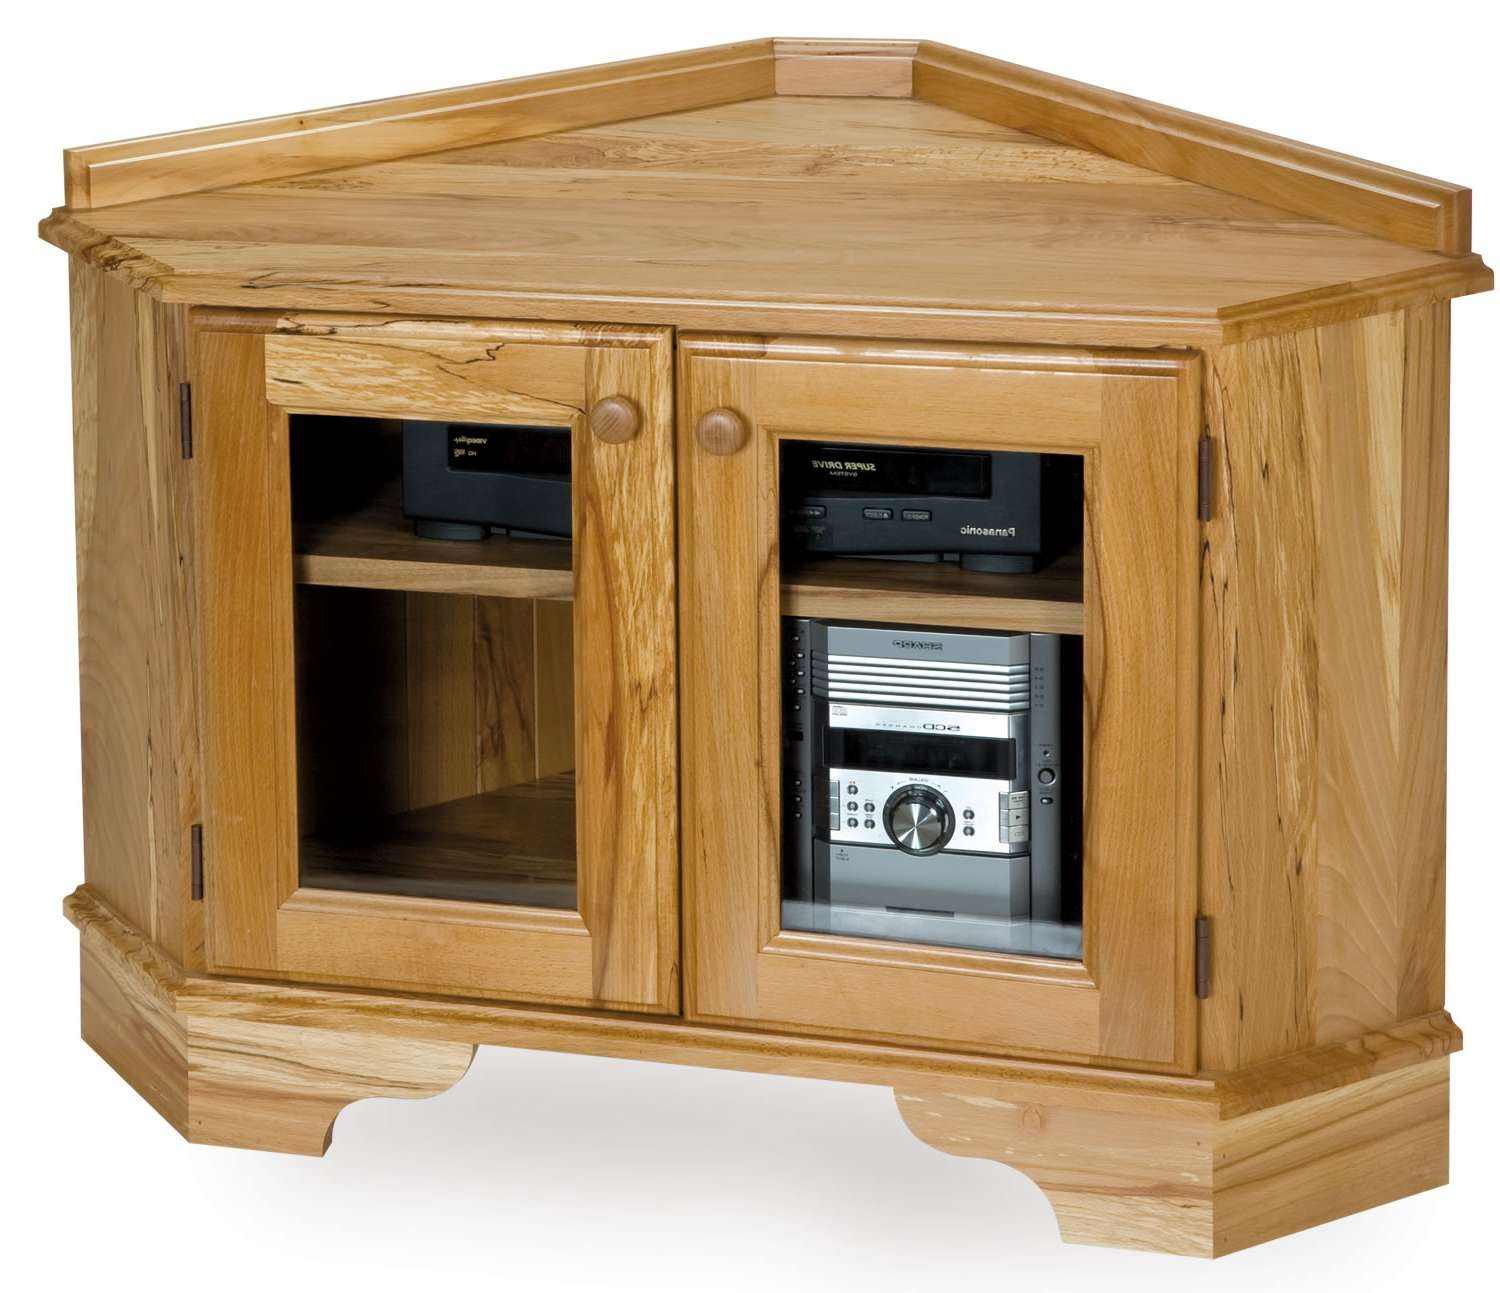 Creative Wooden Corner Tv Cabinet Beautiful Home Design Creative Pertaining To Solid Wood Corner Tv Cabinets (View 5 of 20)